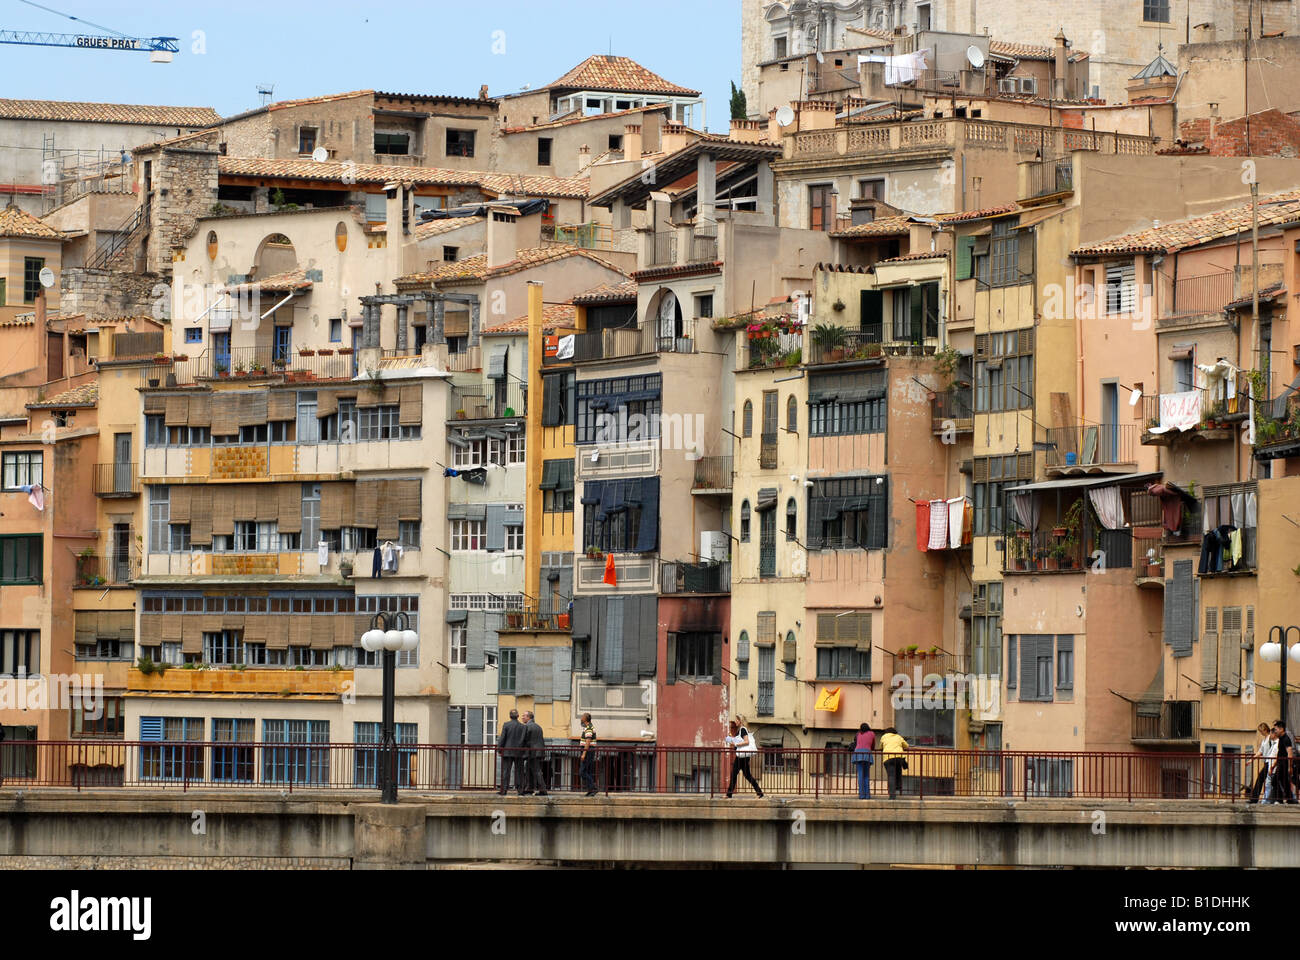 City apartments overlooking the River Onyar in Girona Spain Europe Stock Photo